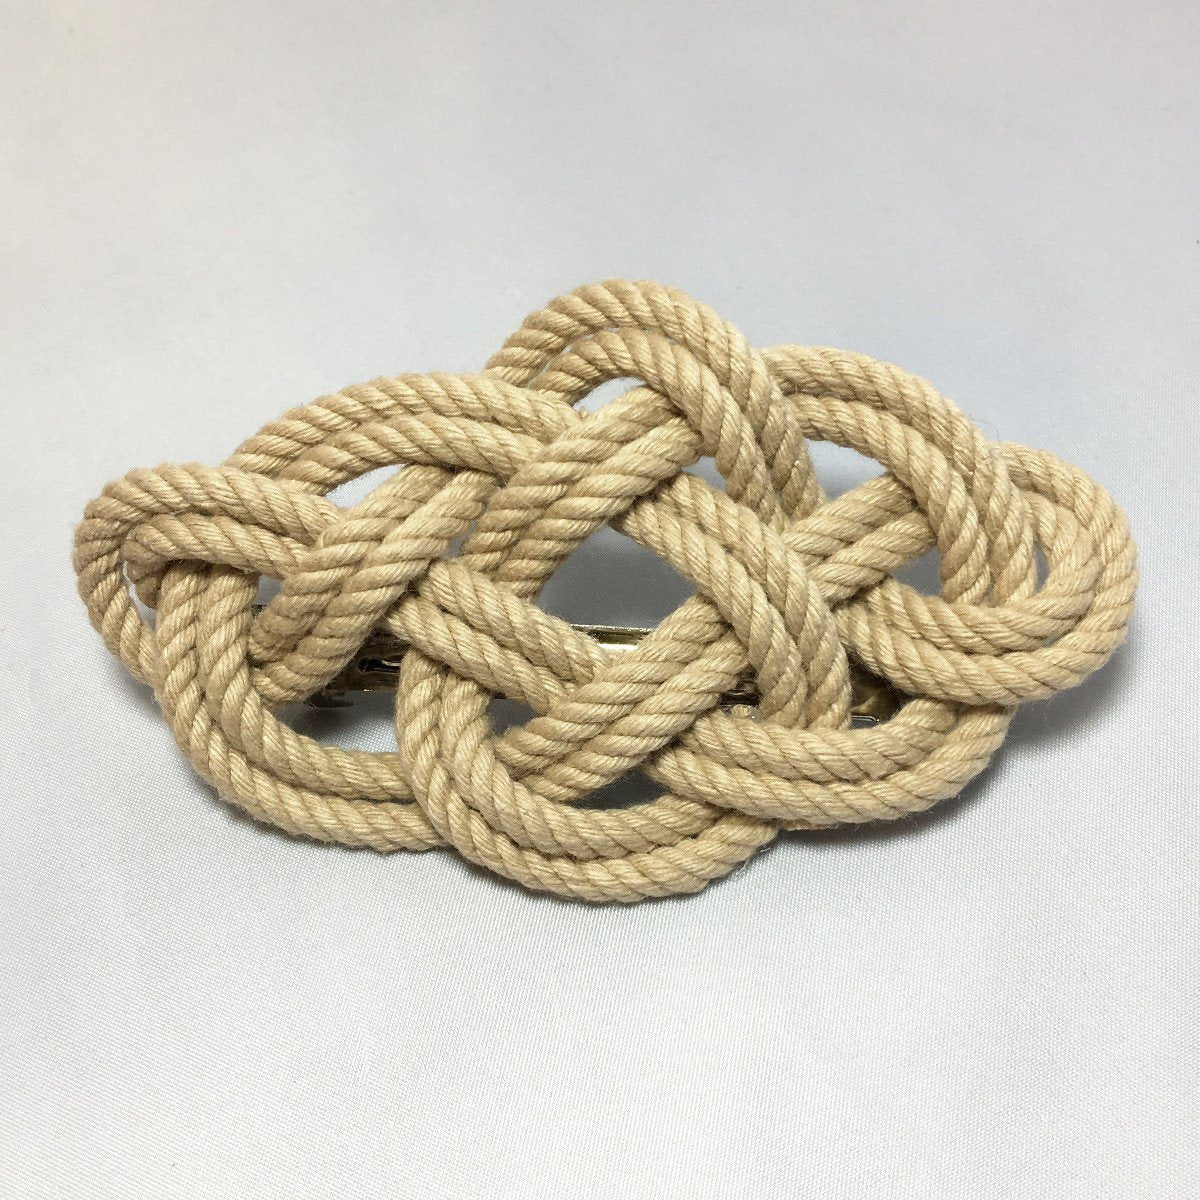 Nautical Celtic Weave Cage Back Barrette Handmade sailor knot American Made in Mystic, CT $ 12.00